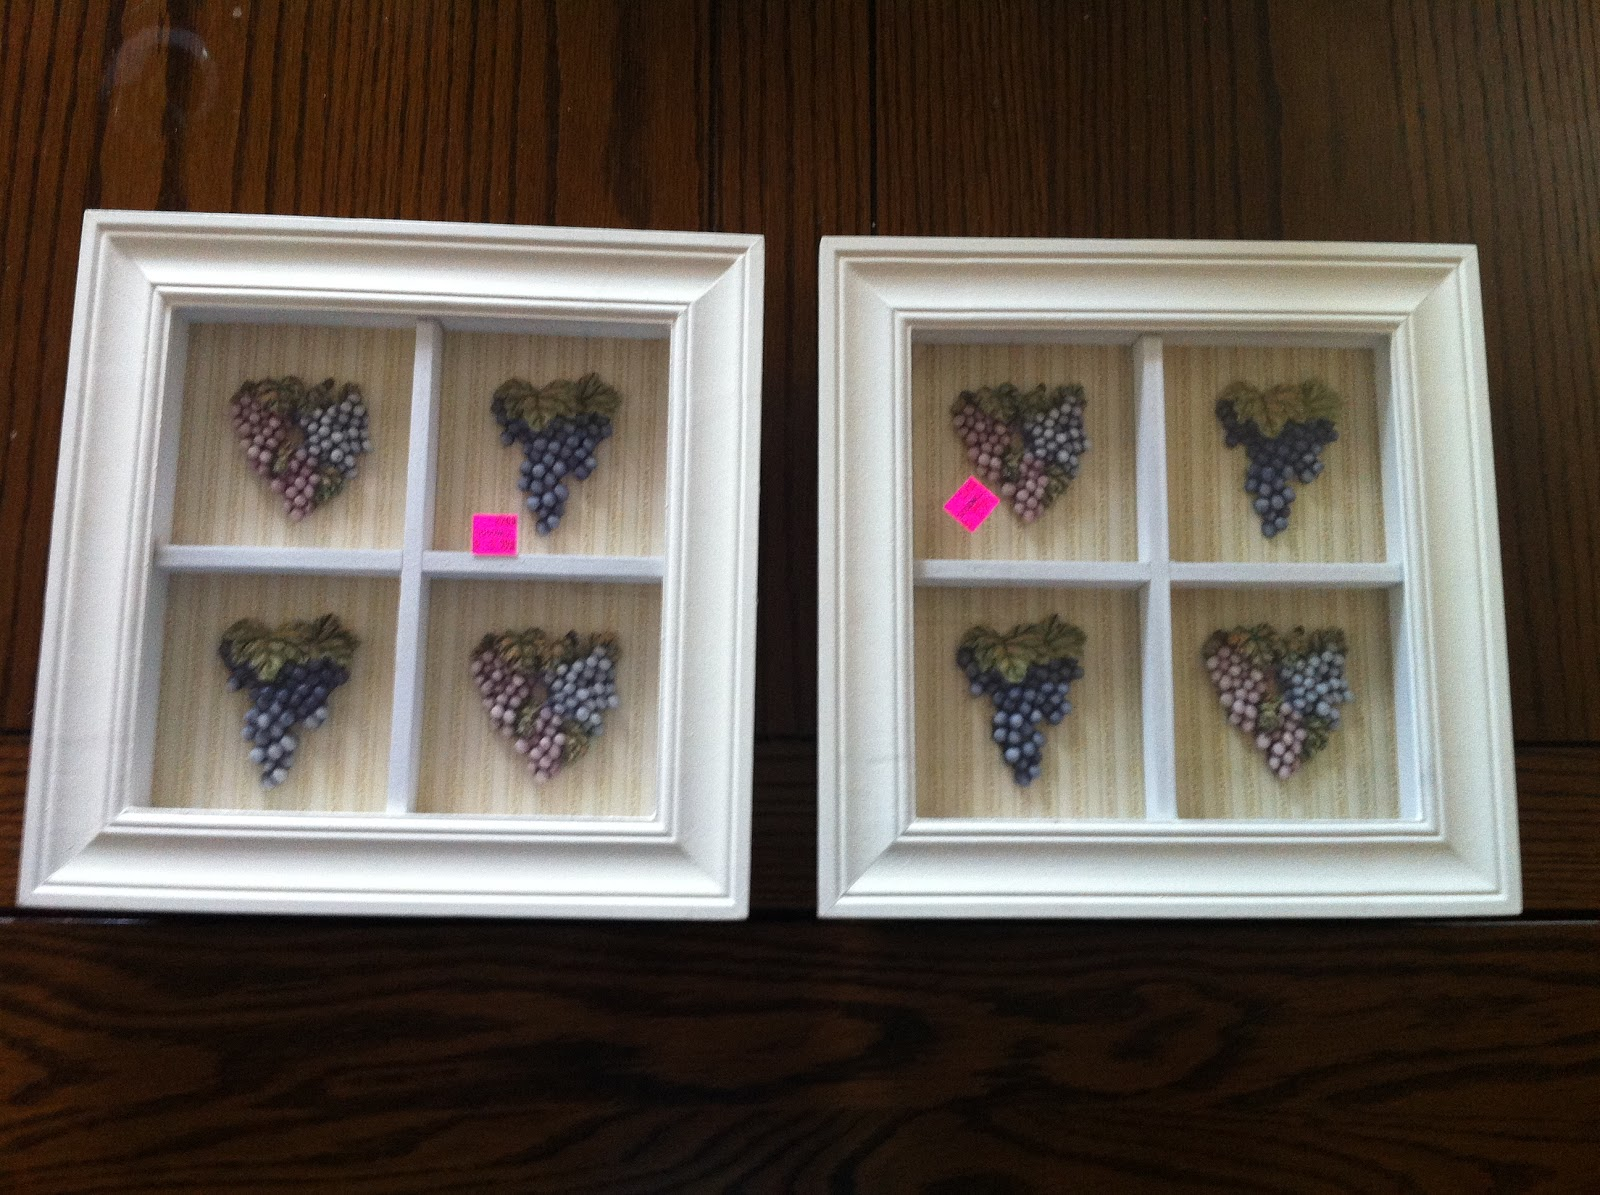 Simply Inspired: Handmade Crafts: Repurposed Goodwill Frames: Bathroom